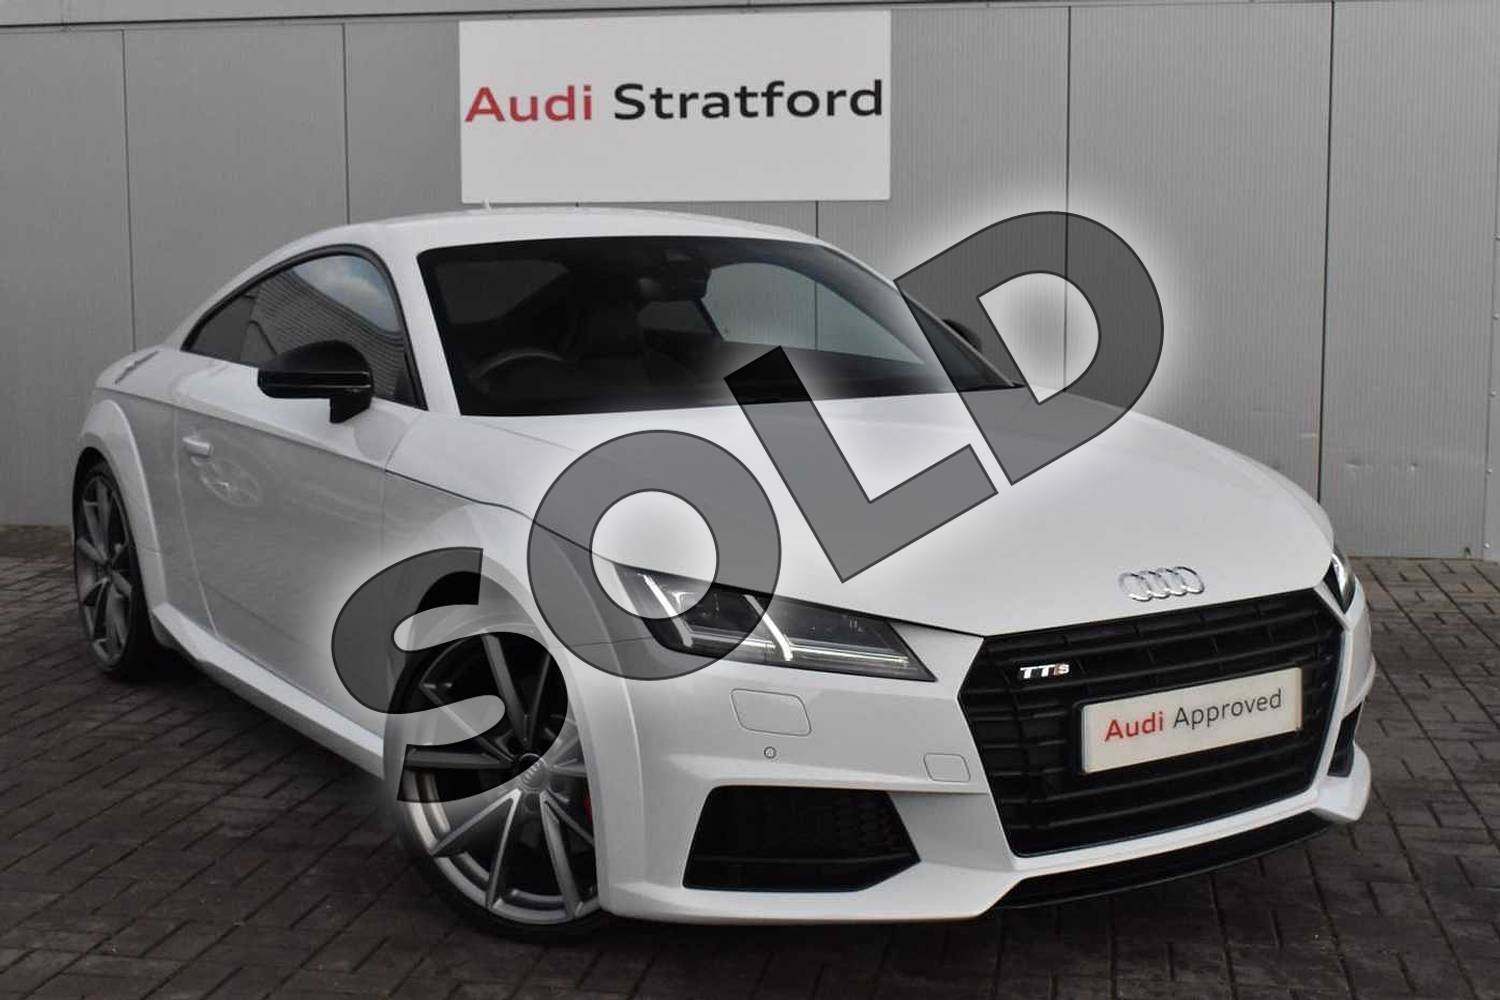 2017 Audi TT Coupe Special Editions Special Editions 2.0T FSI Quattro TTS Black Edition 2dr S Tronic in Glacier White Metallic at Stratford Audi